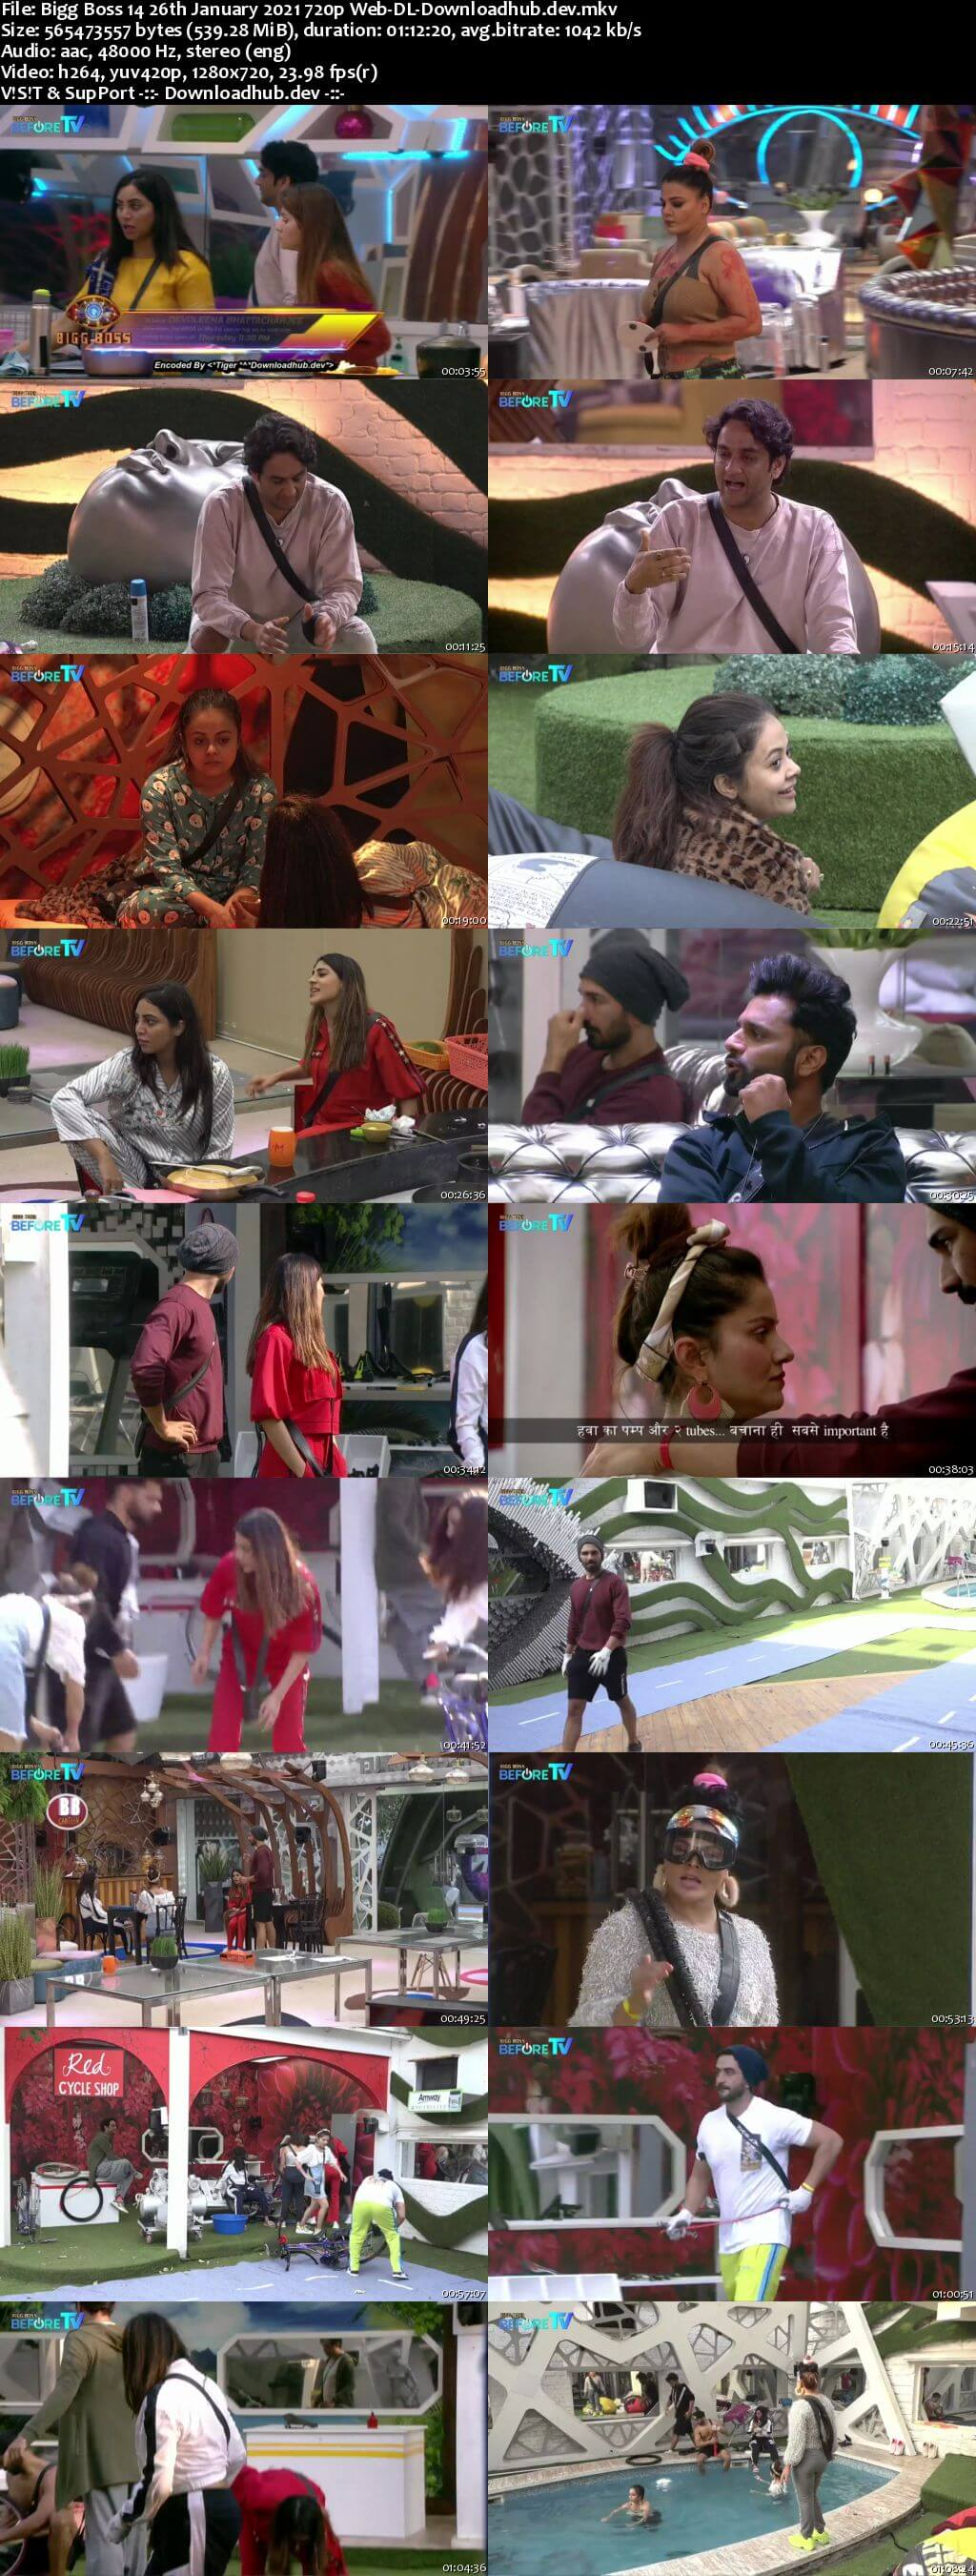 Bigg Boss 14 26th January 2021 Episode 115 720p 480p Web-DL